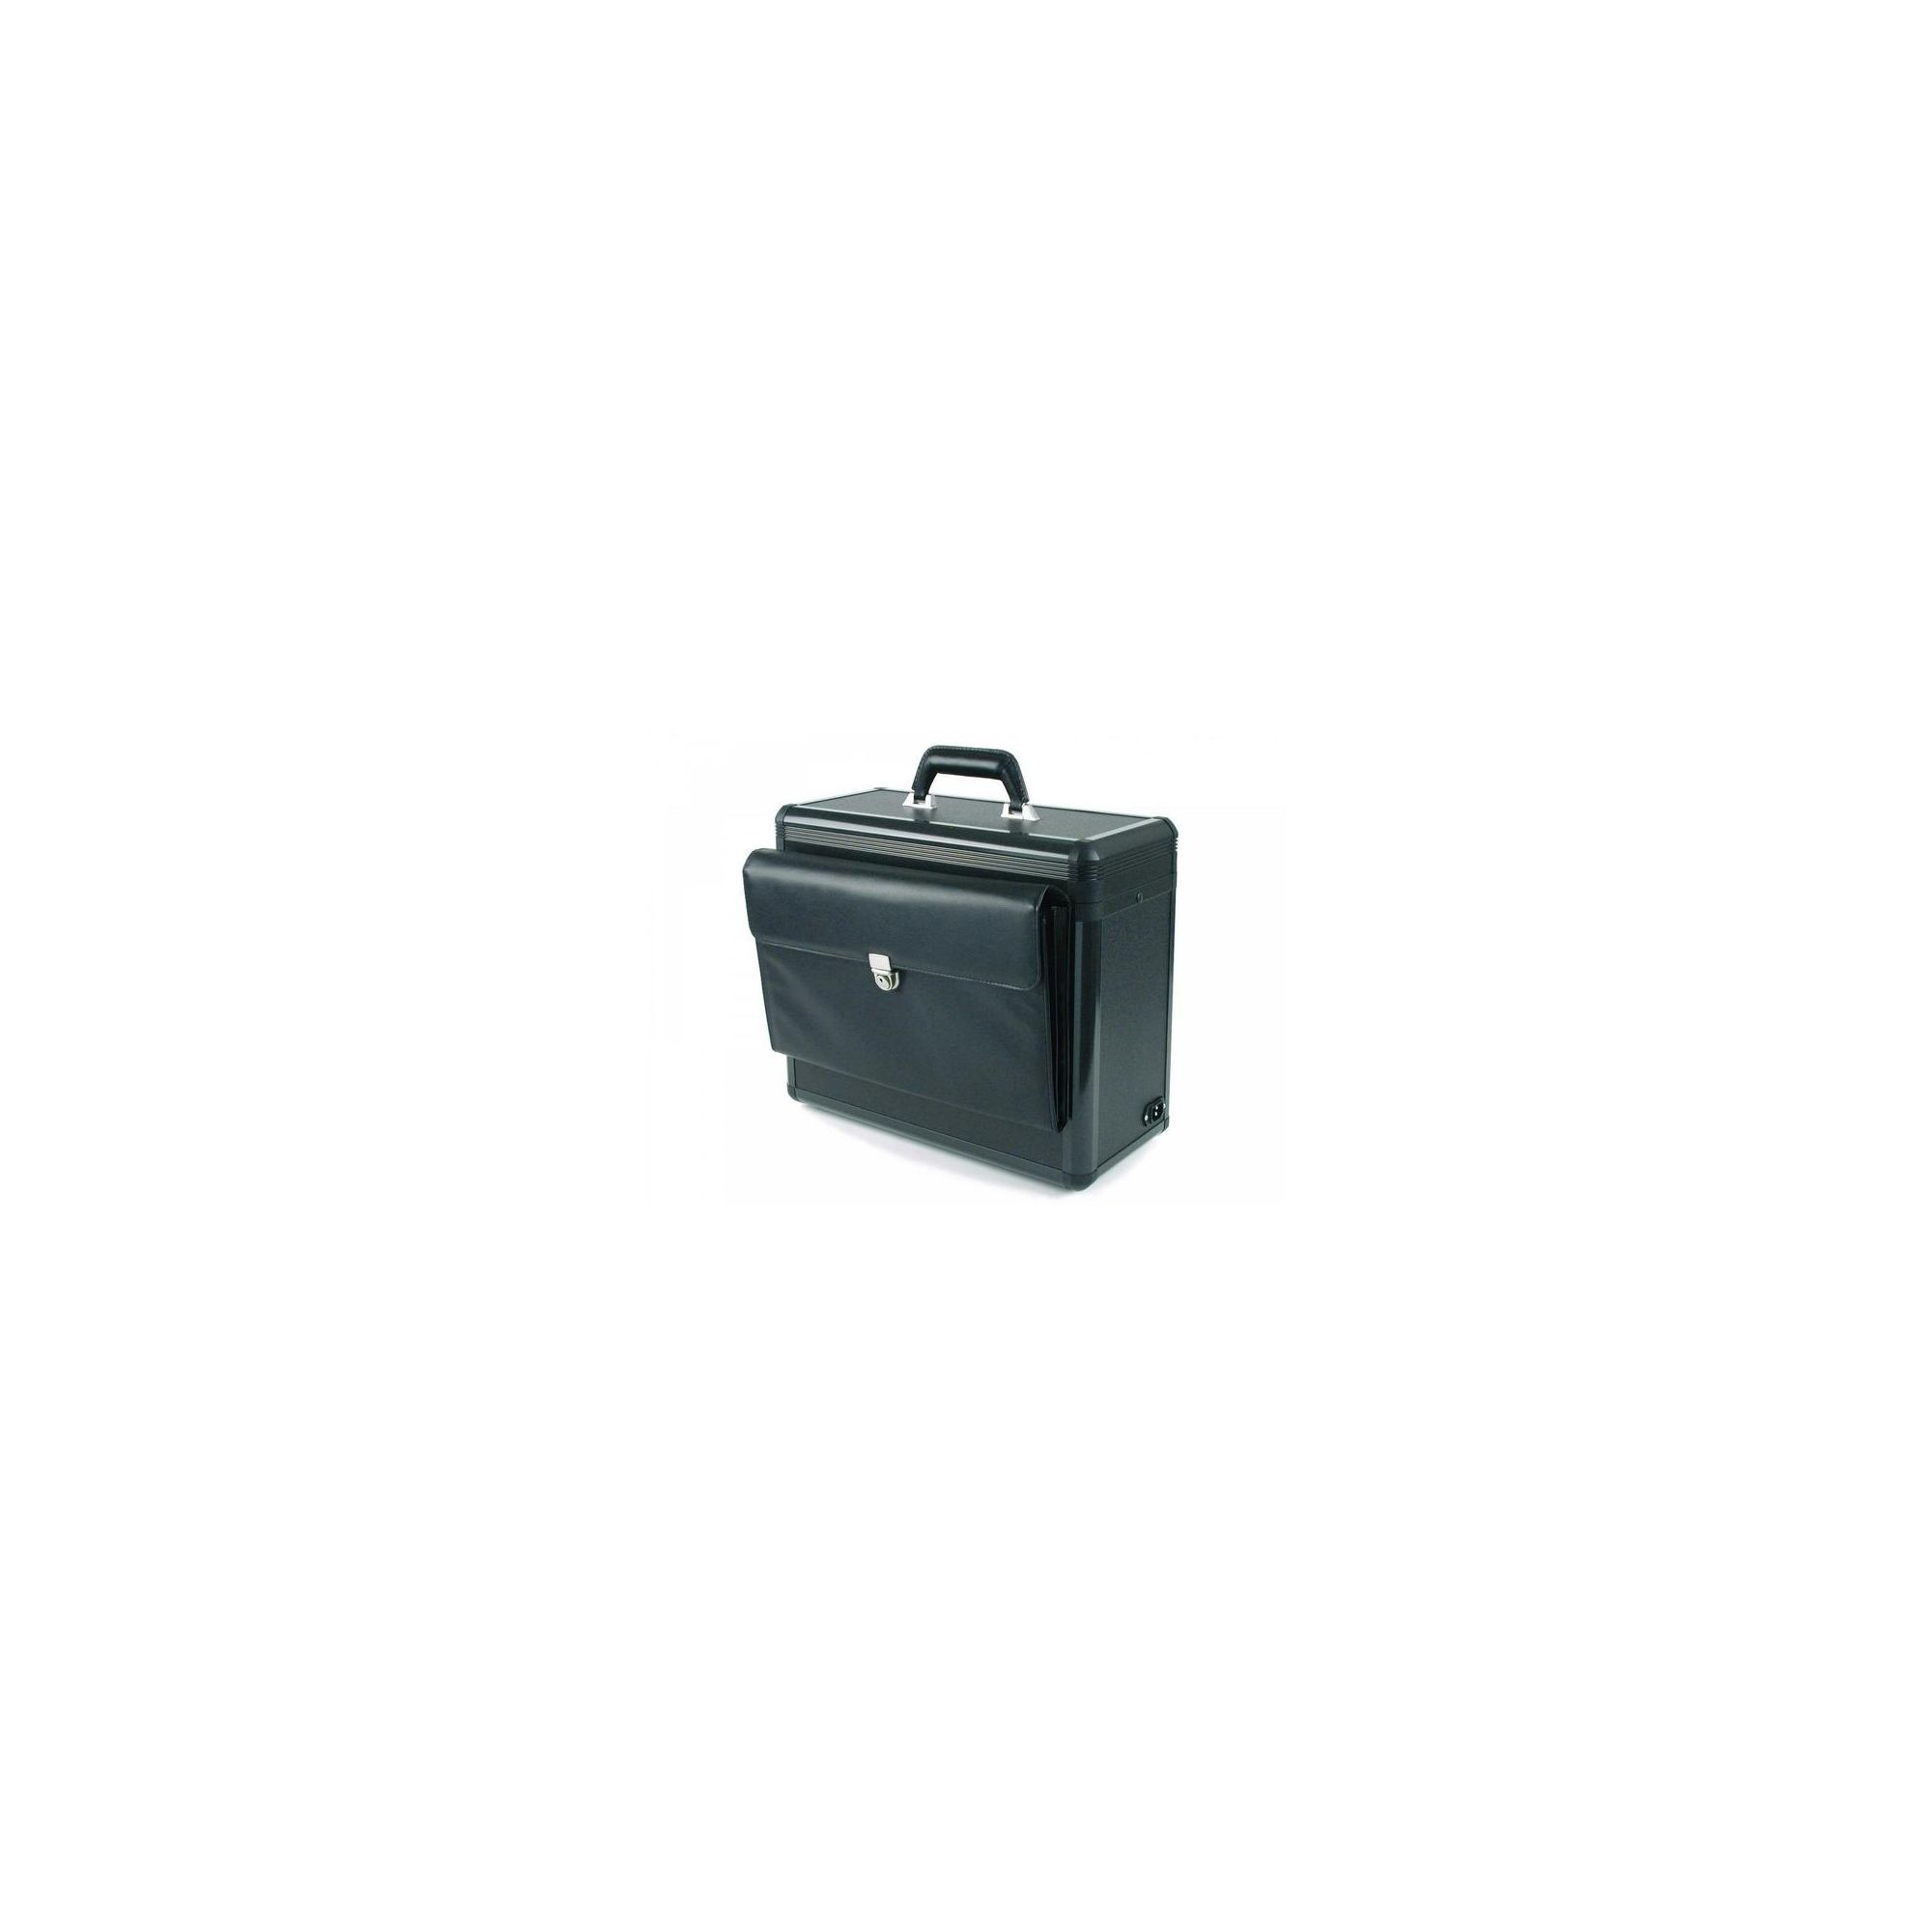 Dicota DataBox Allround XL Case for Notebook and Printer (Black) at Tescos Direct